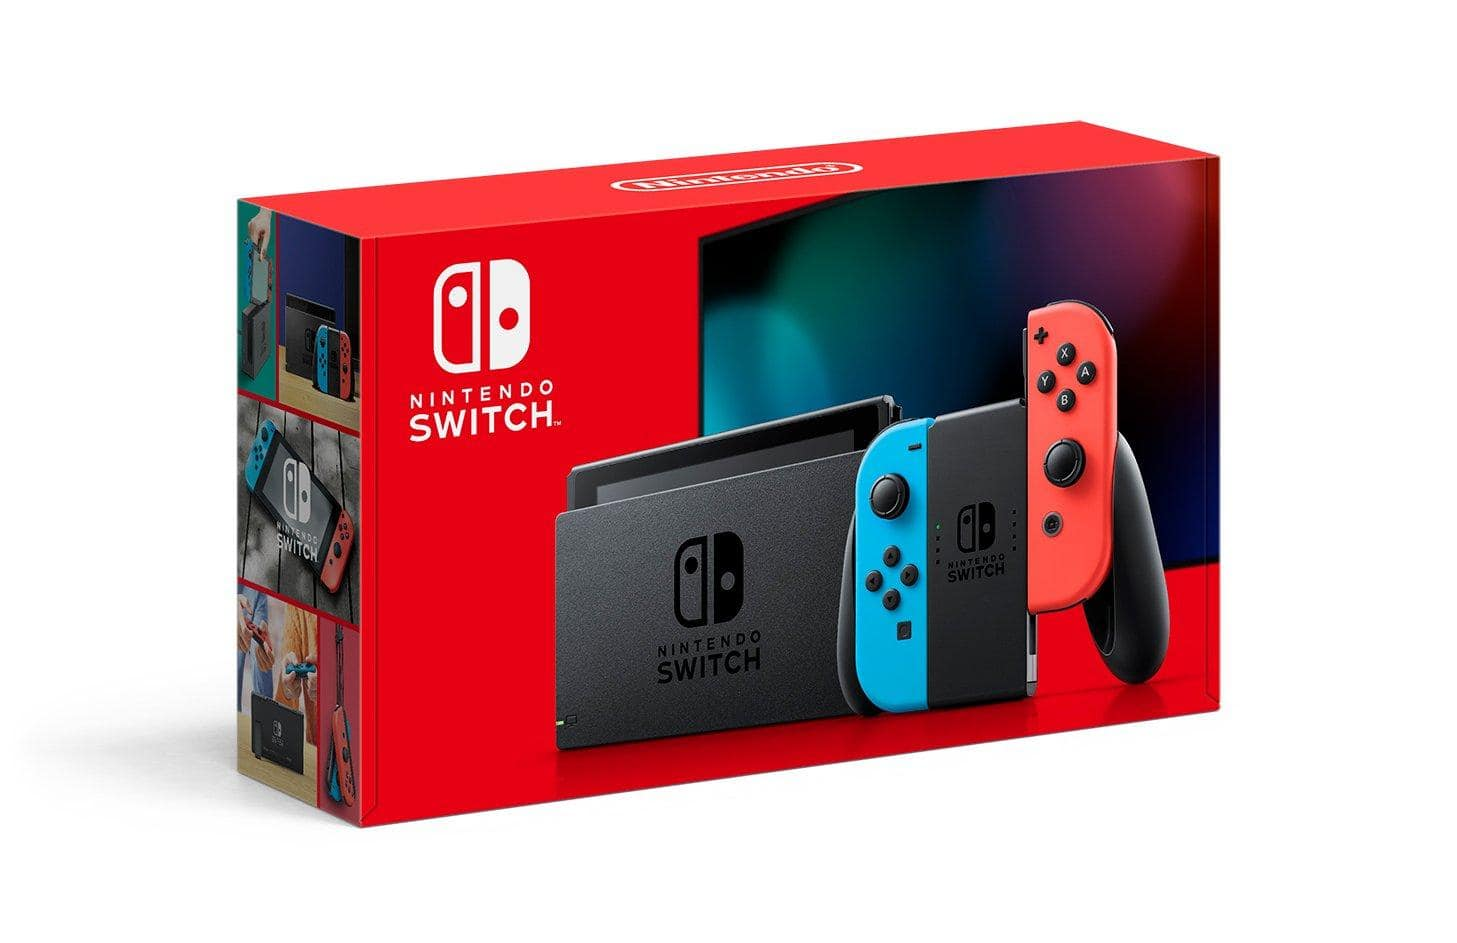 GameStop - Nintendo Switch Neon Blue Red in Stock! (regular price but since it's sold out most places posted anyway)